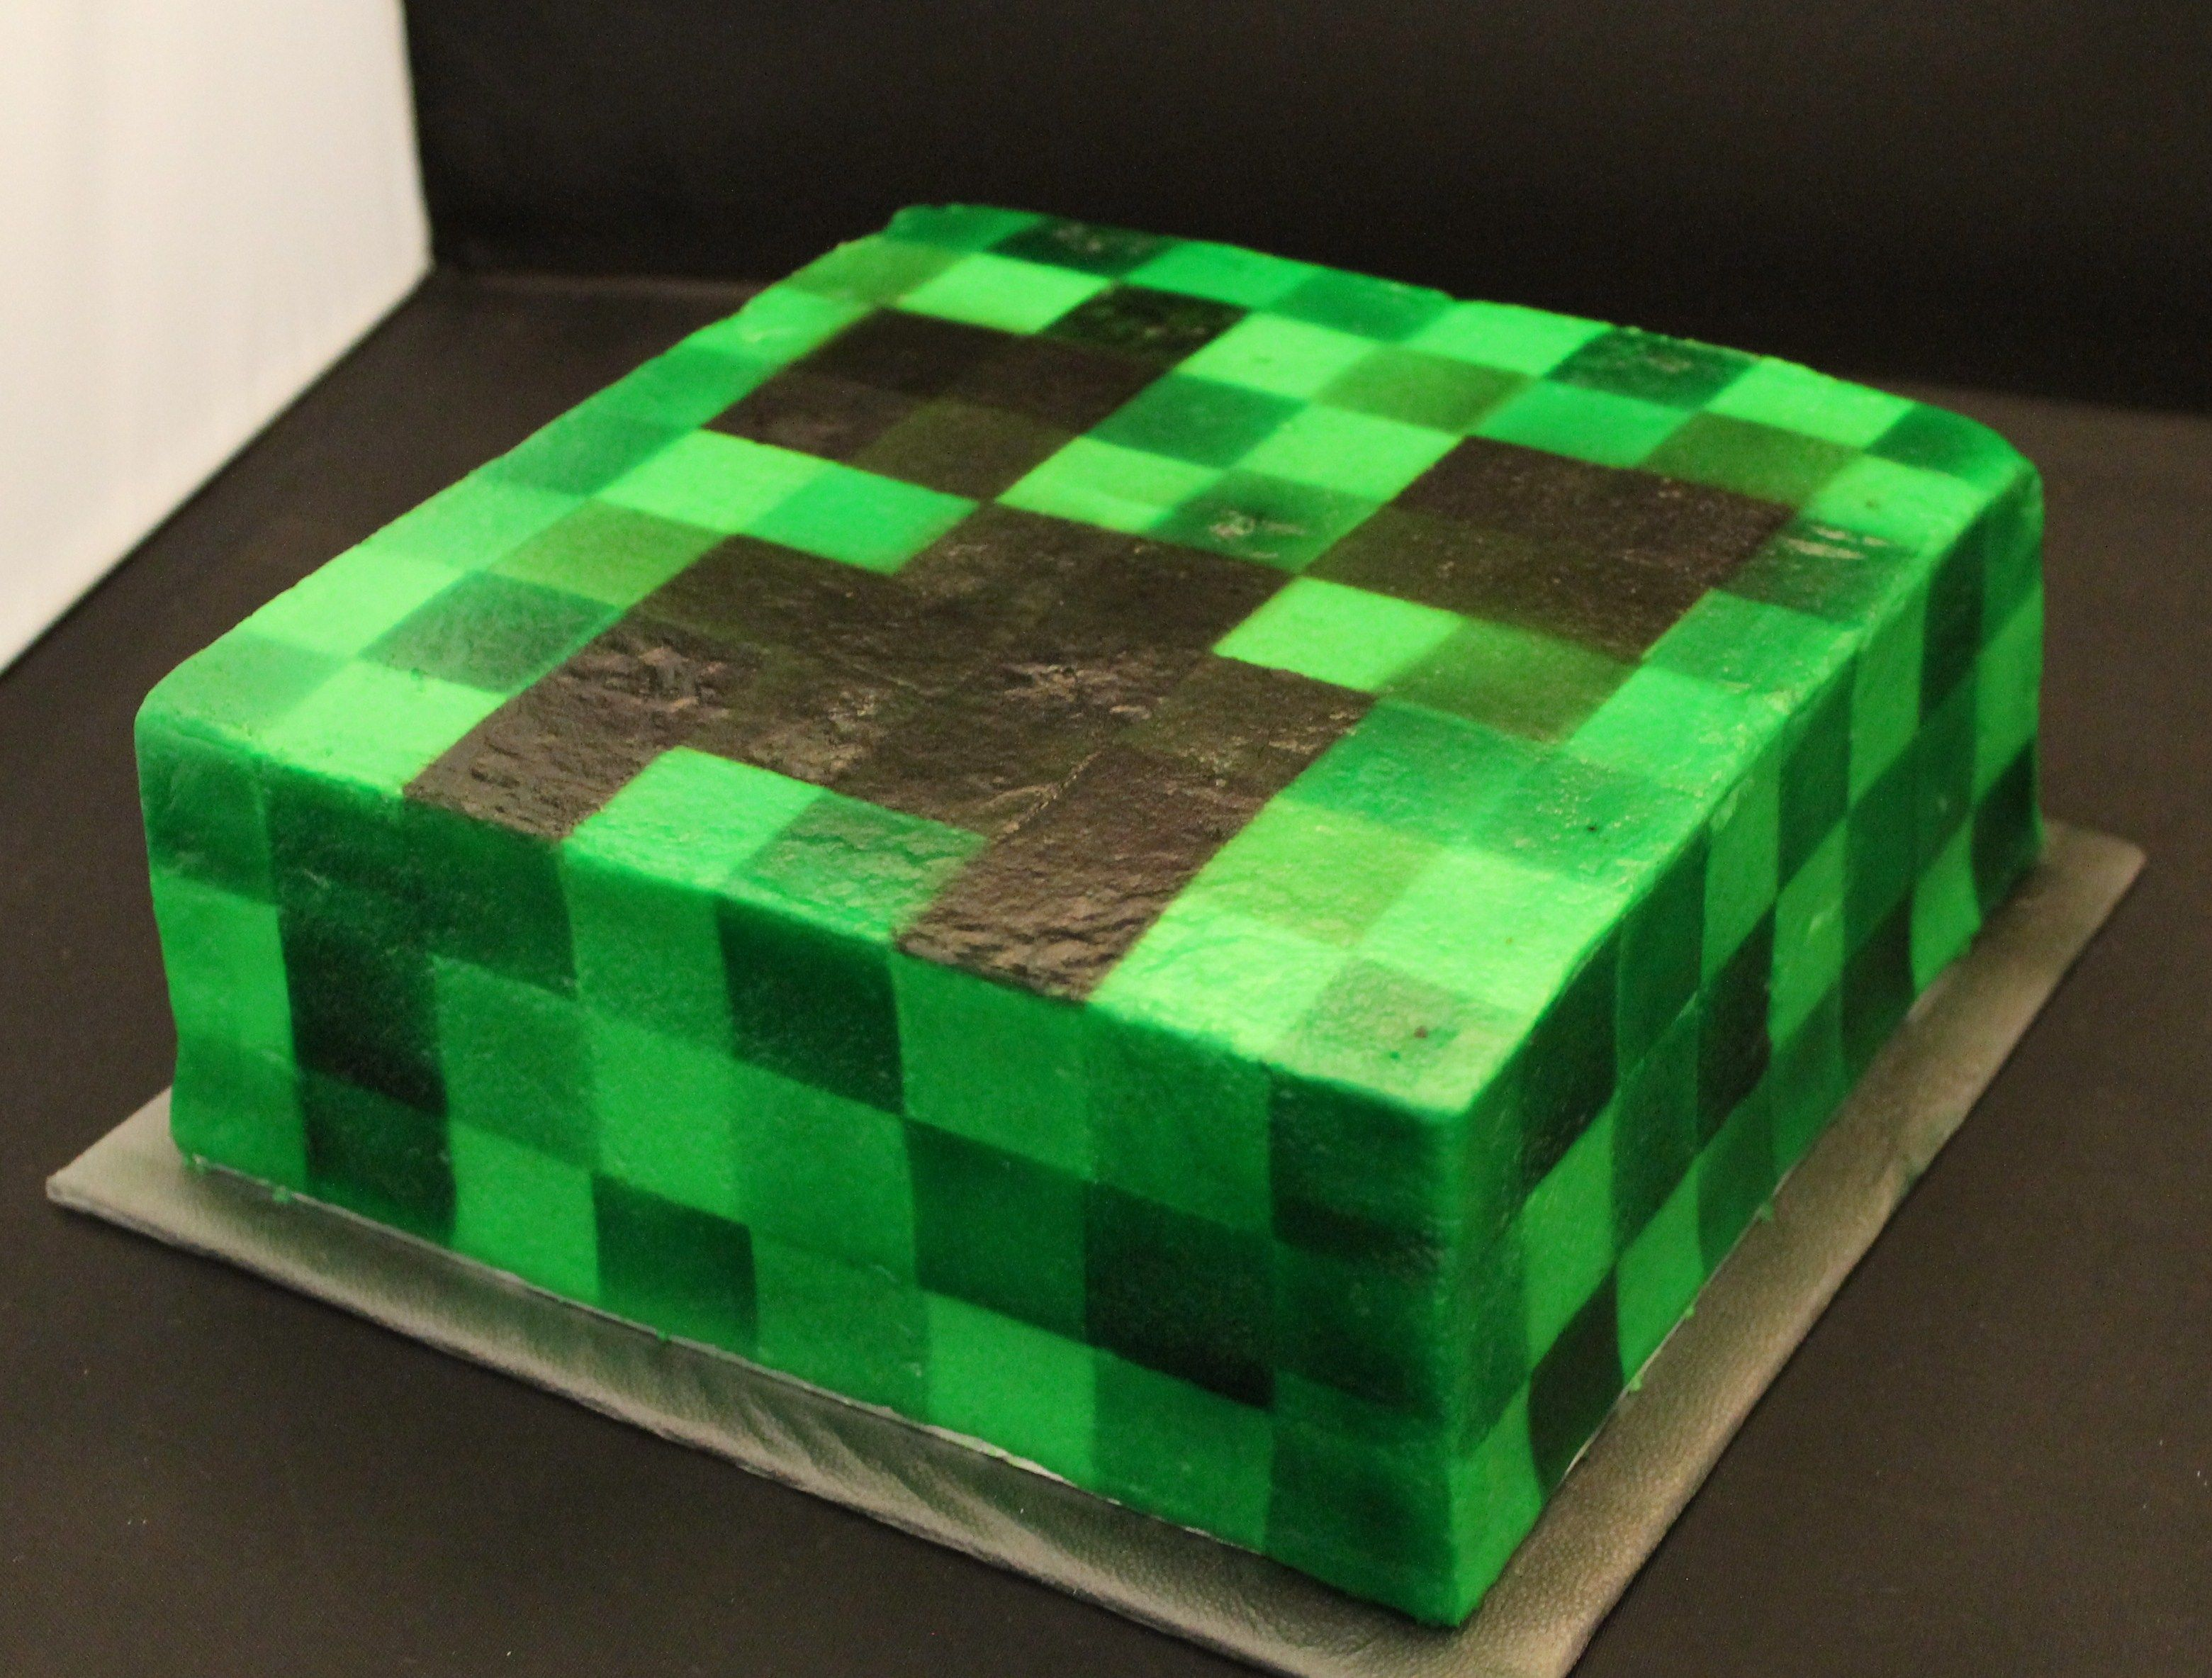 buttercream iced minecraft cake or fb jsweets treats cake decorating. Black Bedroom Furniture Sets. Home Design Ideas